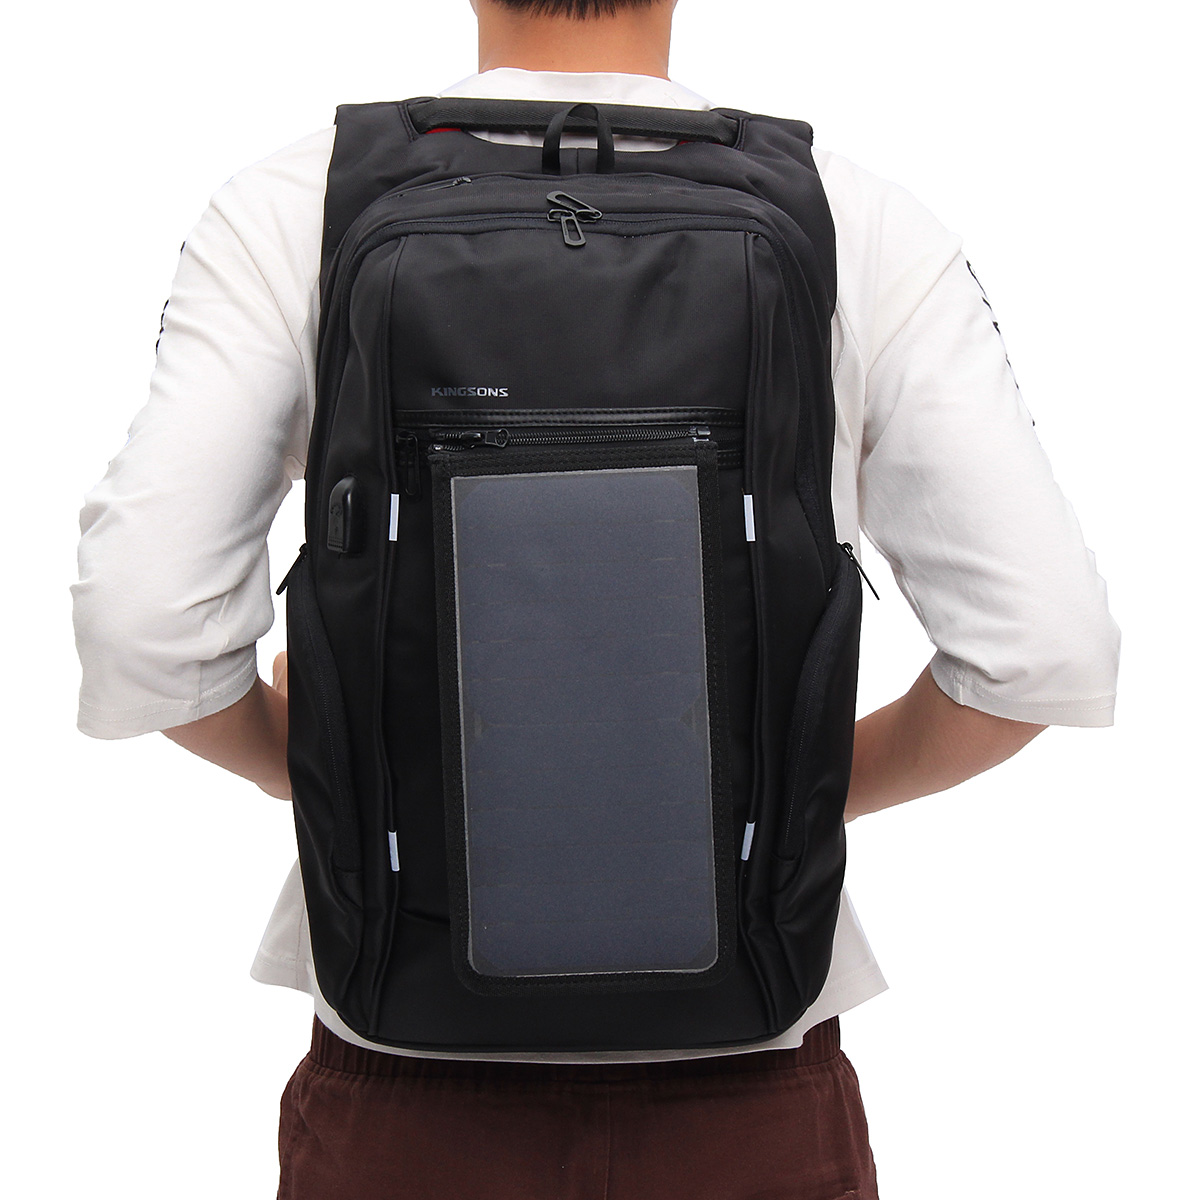 15.6 Inch Outdoor Travel Solar Panel Backpack with USB Charger Waterproof Laptop Bag